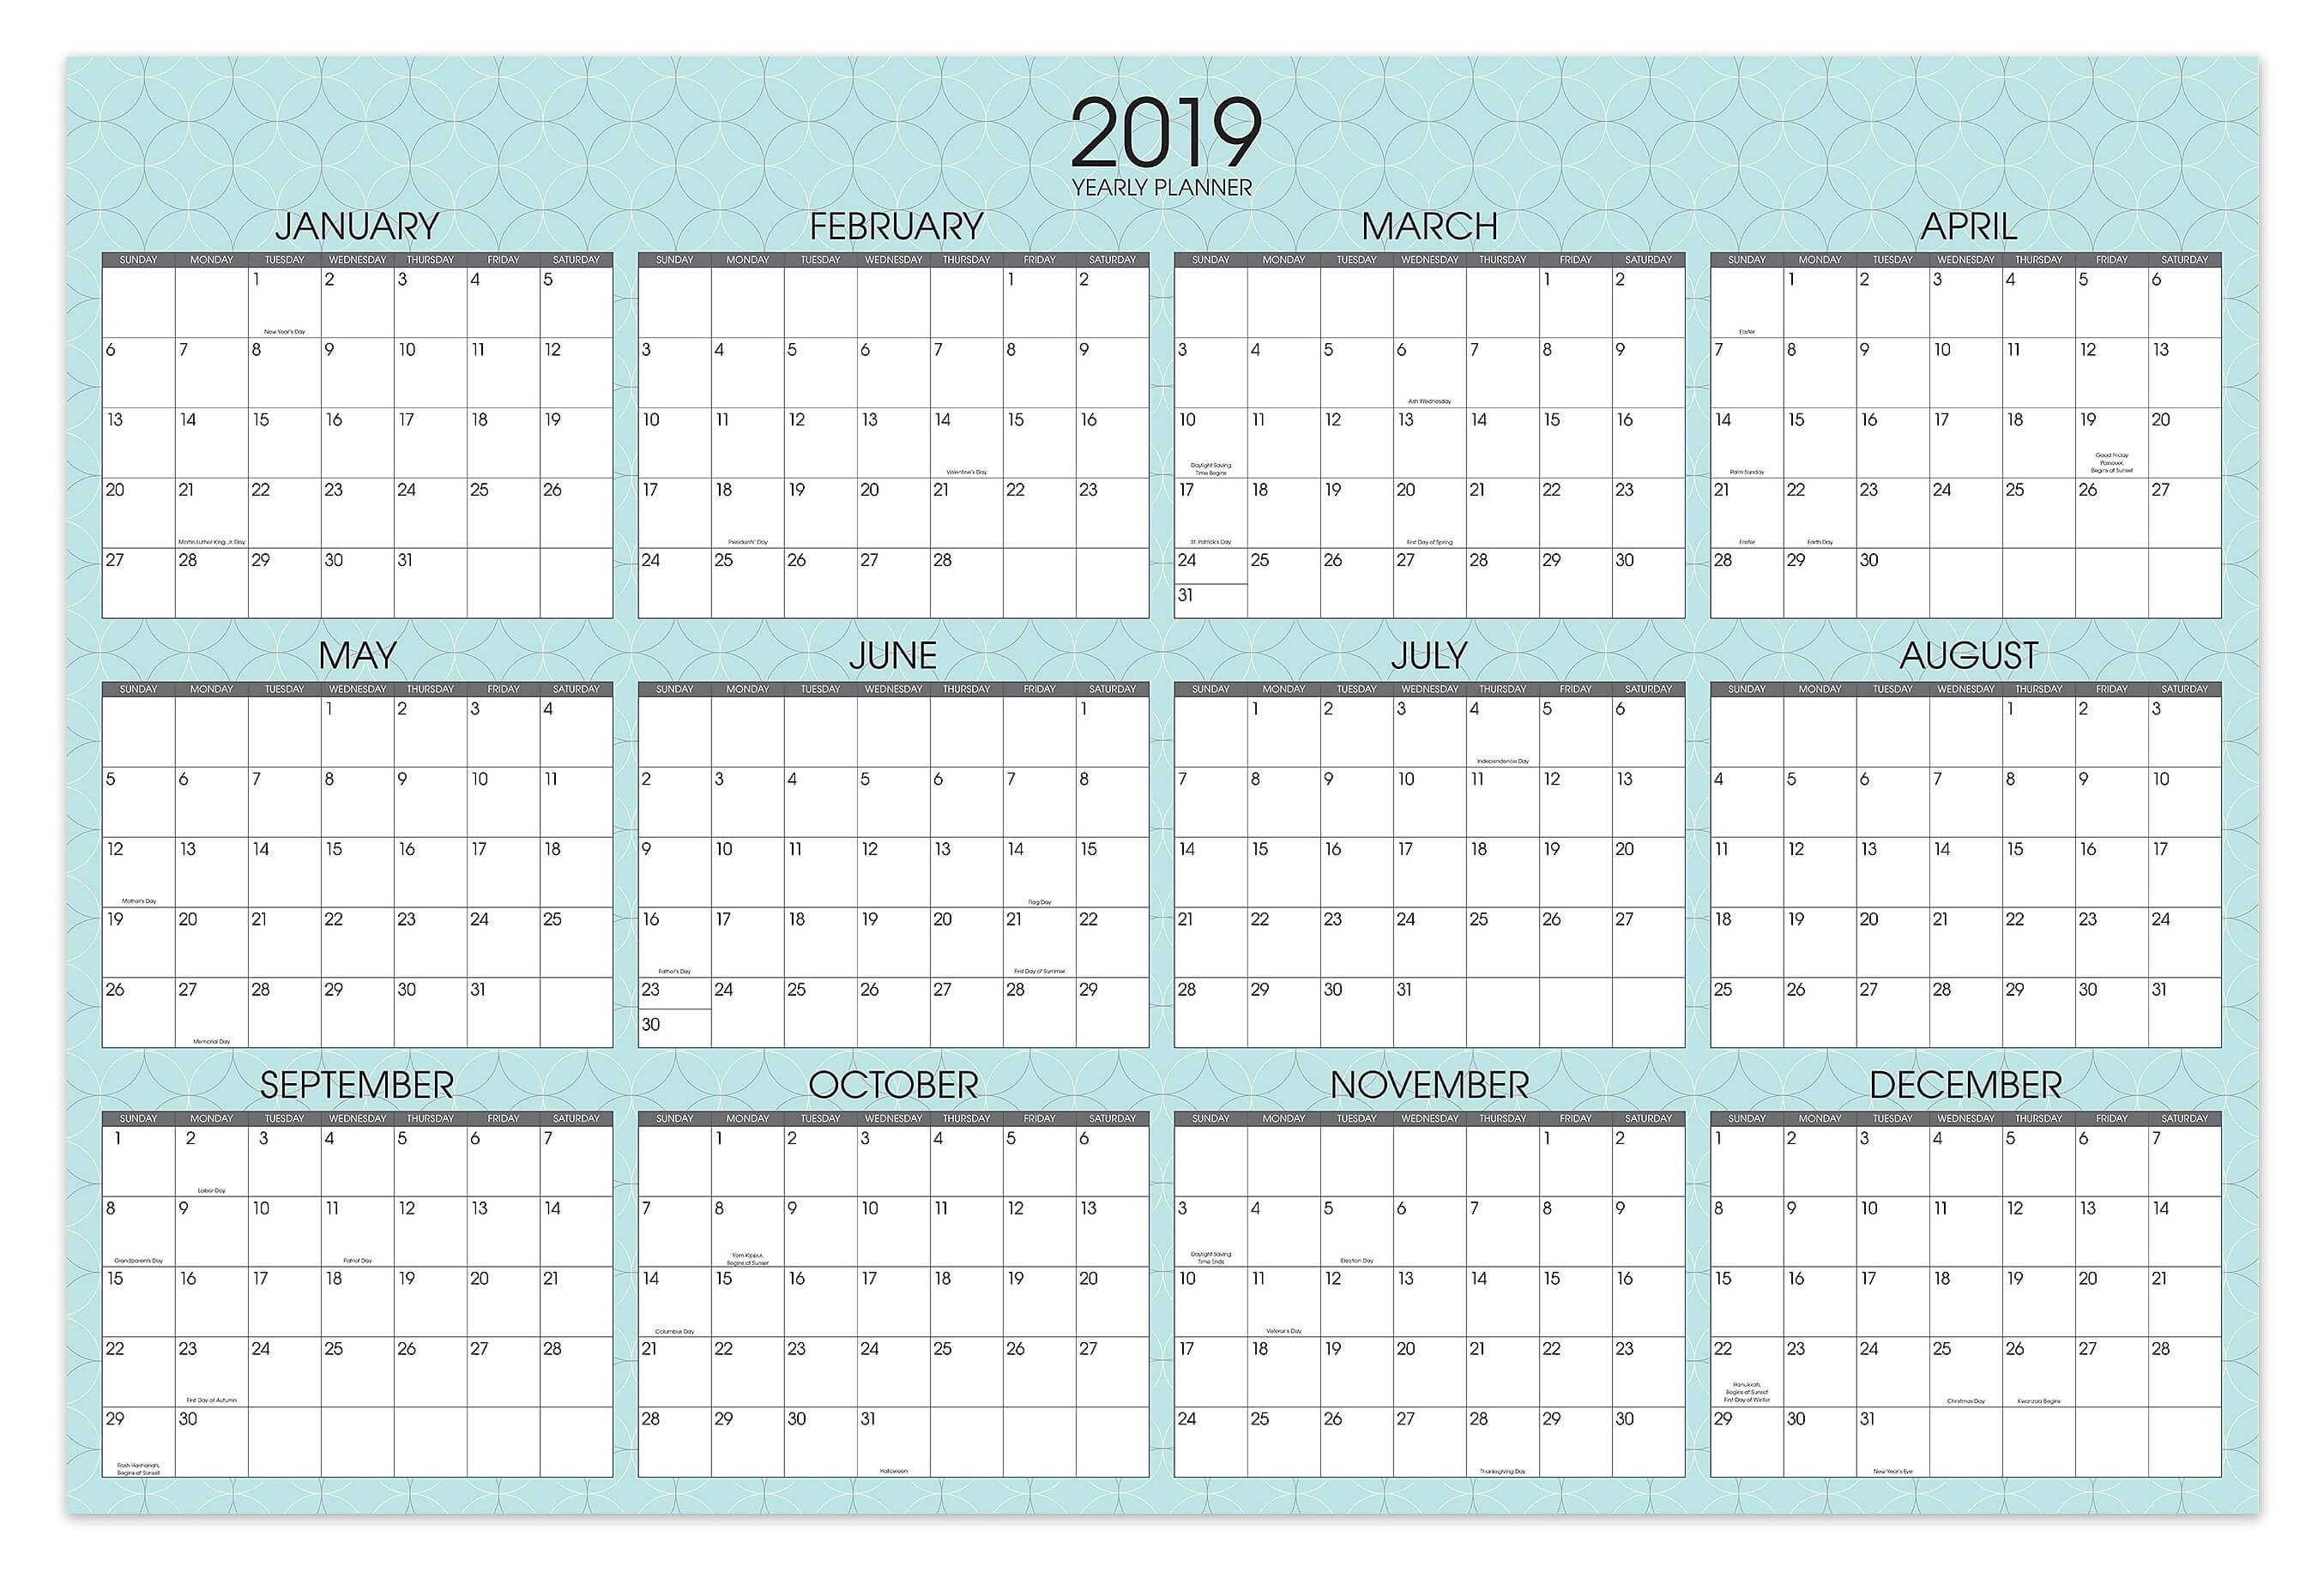 Yearly Calendar Template By Vertex42 Archives - Bi-Calendar Templates By Vertex42.com